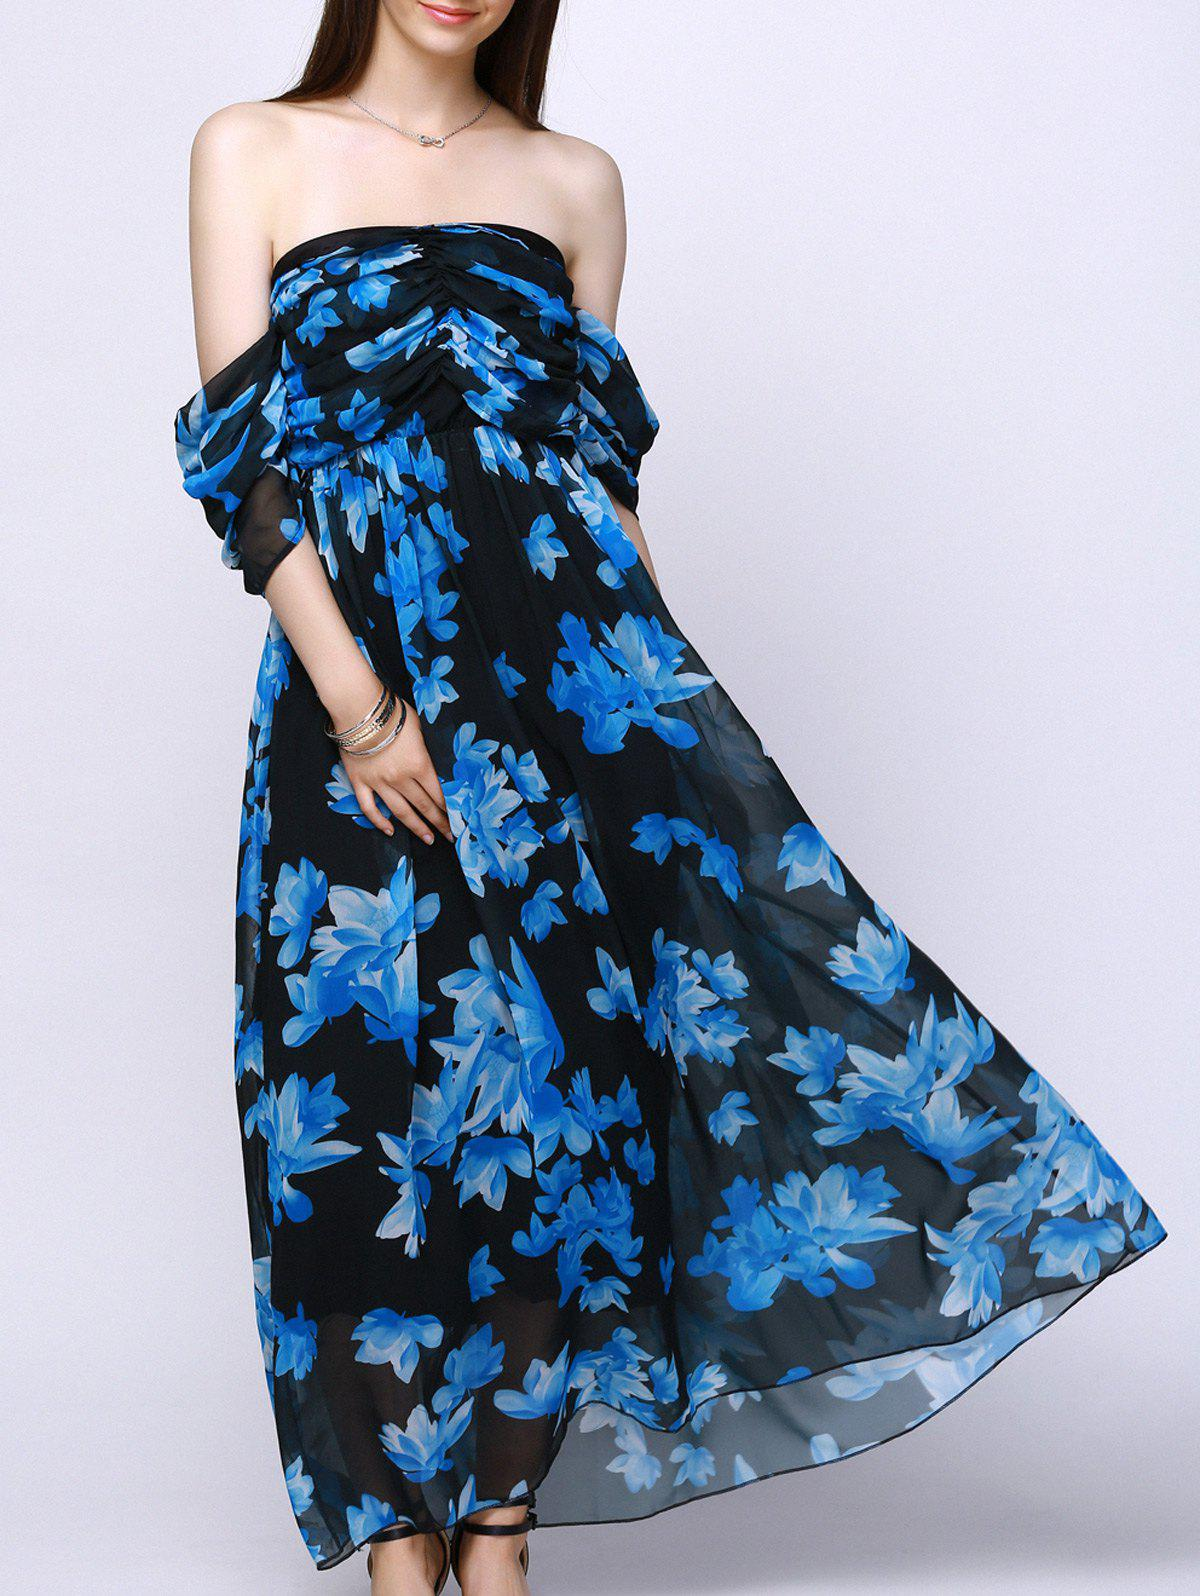 Alluring Strapless Floral Print Draped Sleeves Chiffon Dress For Women - BLUE/BLACK M